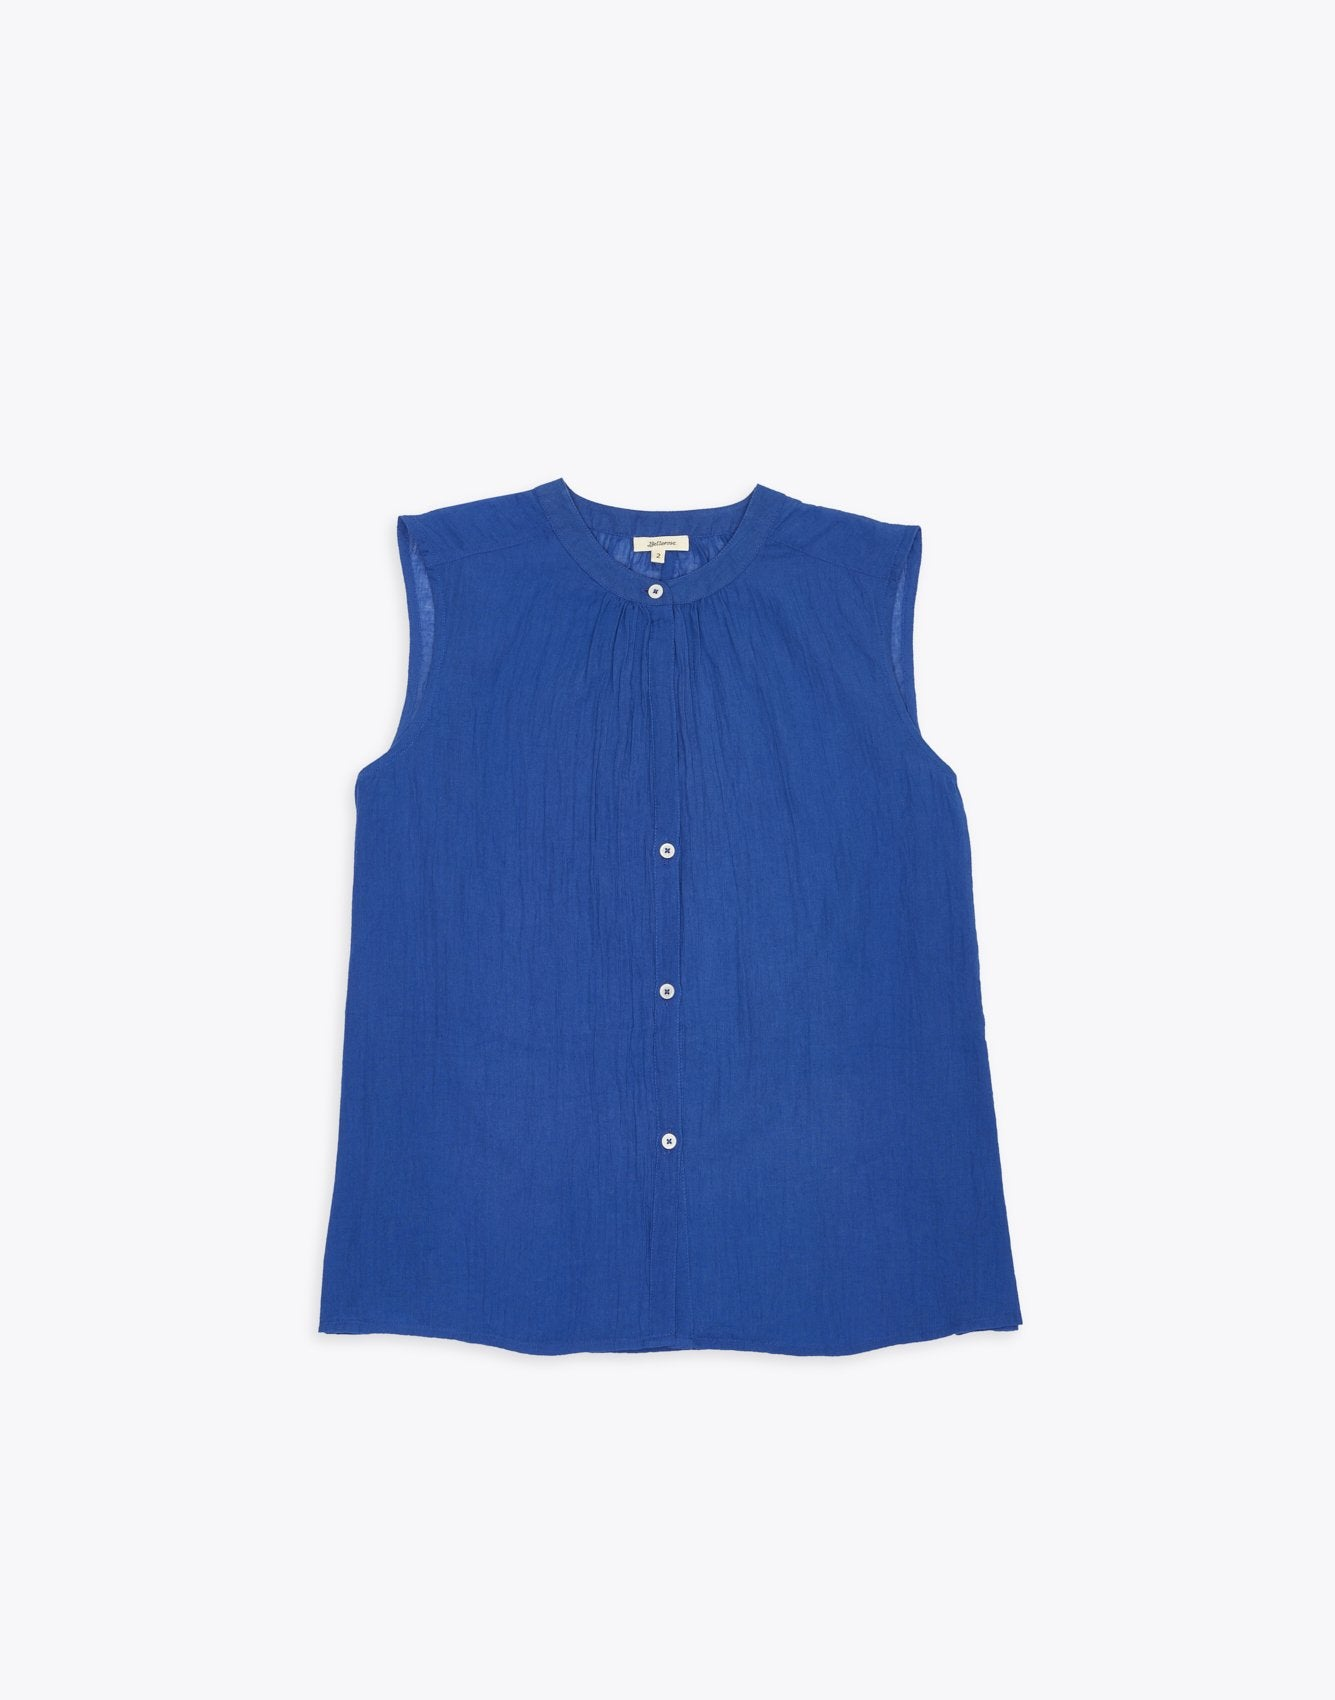 Bellerose blue cotton sleeveless blouse for women